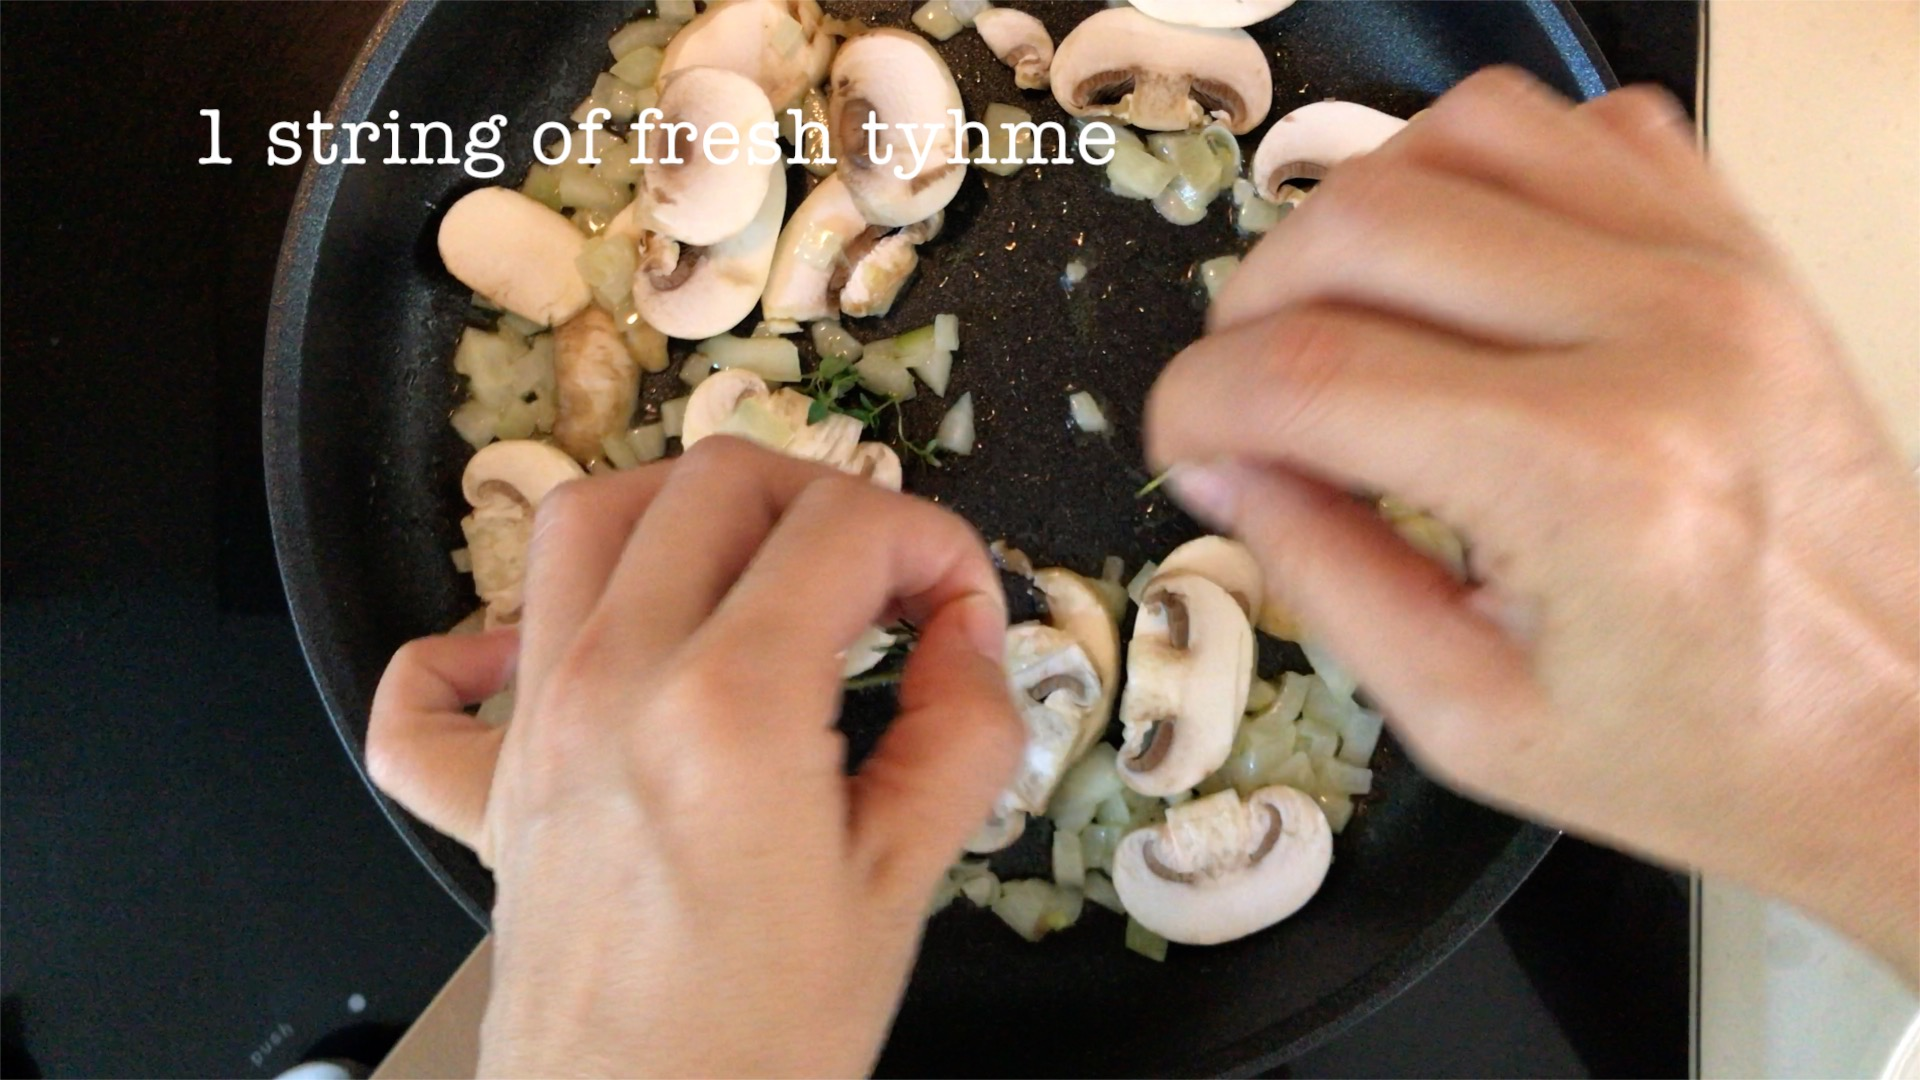 picking a string of fresh thyme and add in the sauteed mushroom and onion